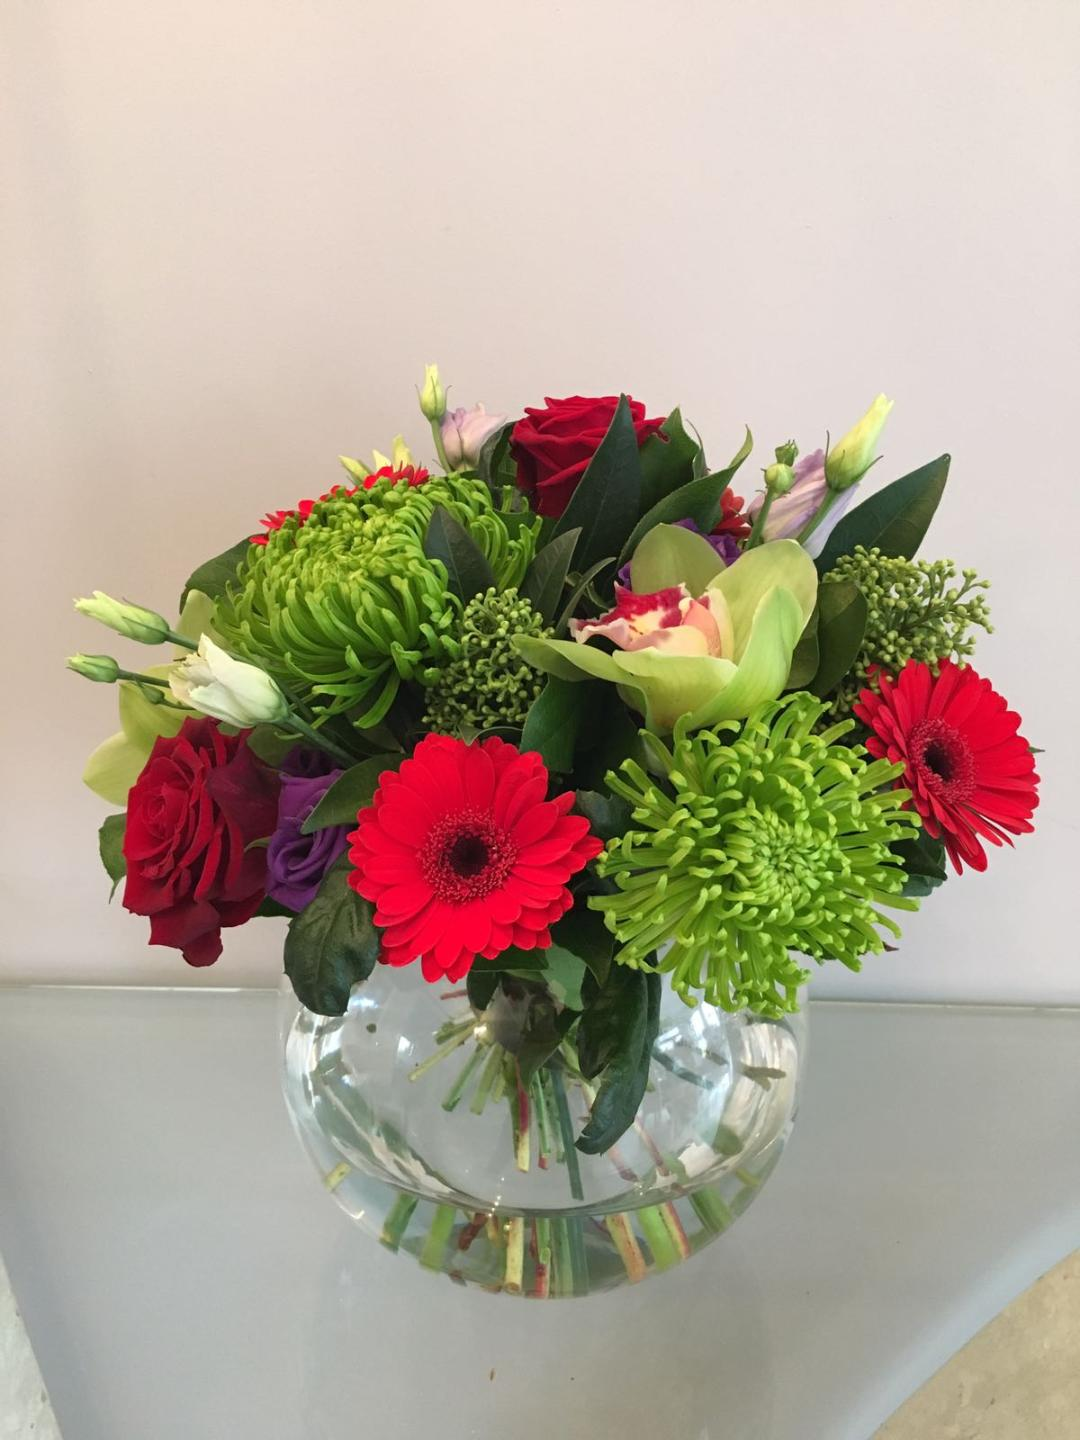 Annabelle fishbowl flower arrangement bushey heath bushey village annabelle izmirmasajfo